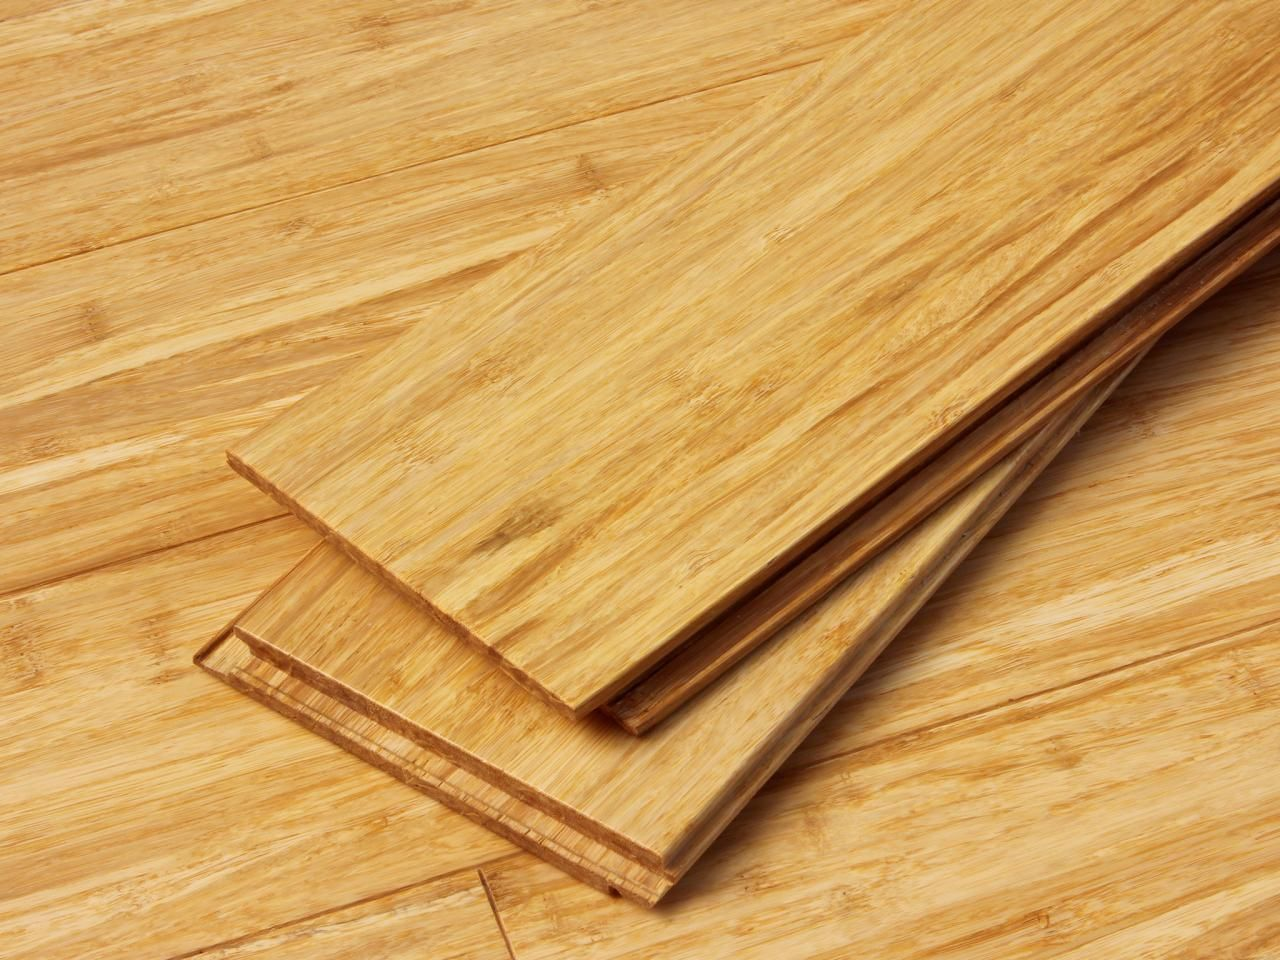 How To Make A Bamboo Lighting Fixture Flooring Bamboo How To